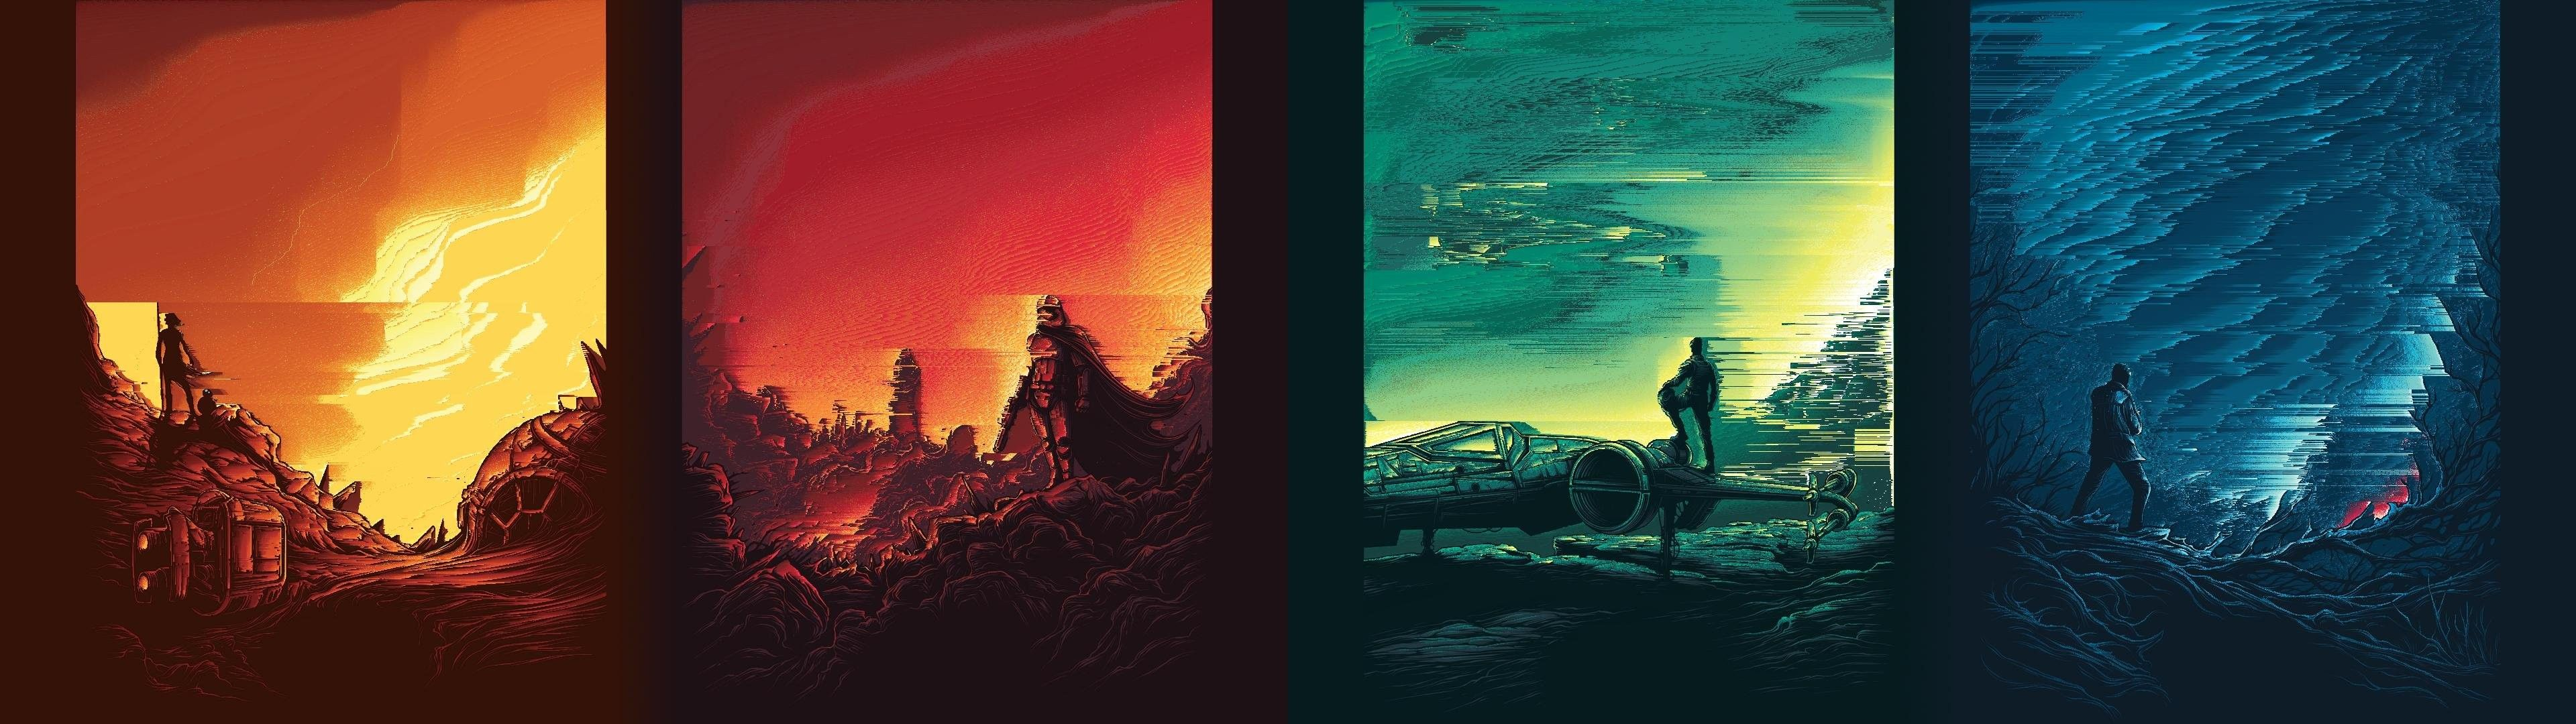 Star Wars Dual Screen Wallpapers Top Free Star Wars Dual